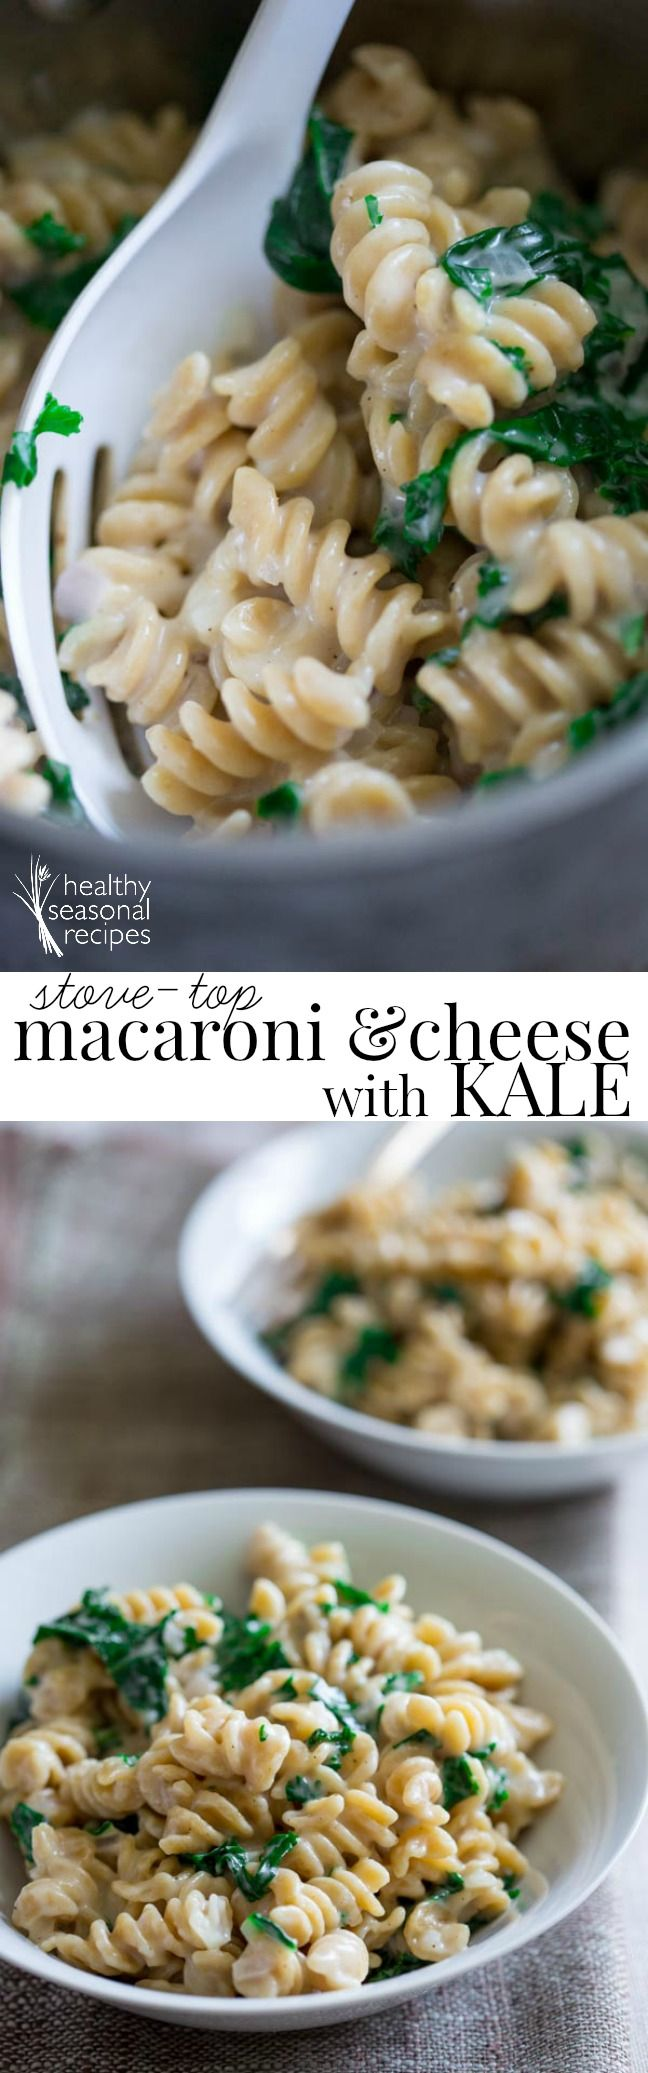 healthy stove-top macaroni and cheese with kale - Healthy Seasonal Recipes